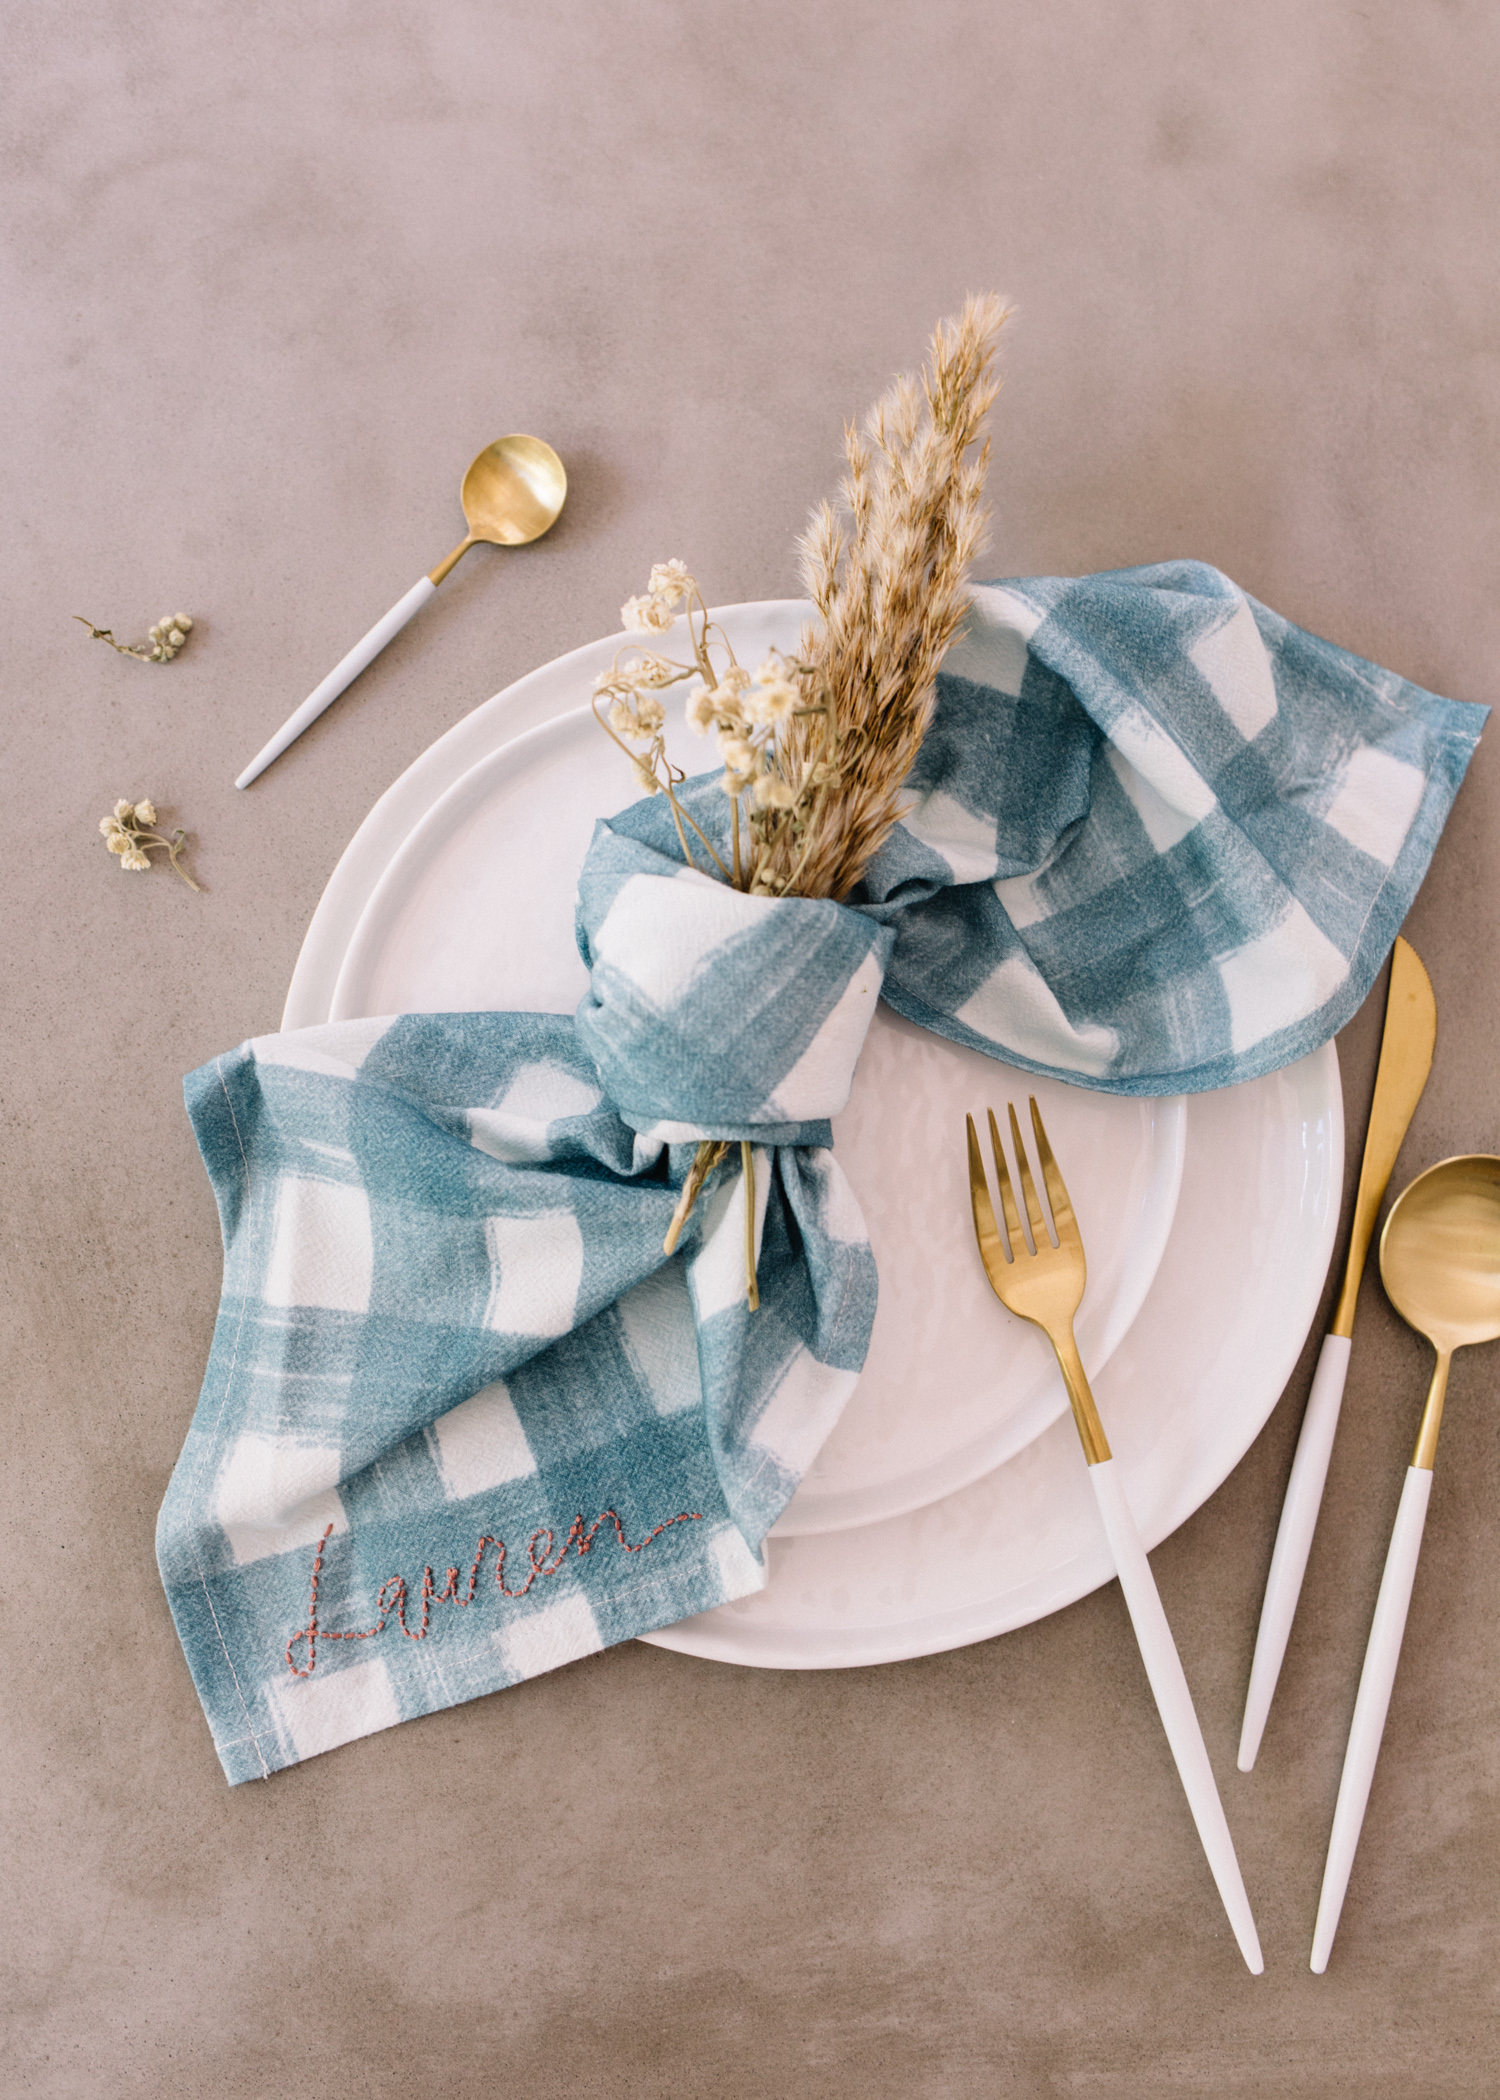 DIY: Embroidered Napkins - Hostess Gift || A Fabulous Fetejpg